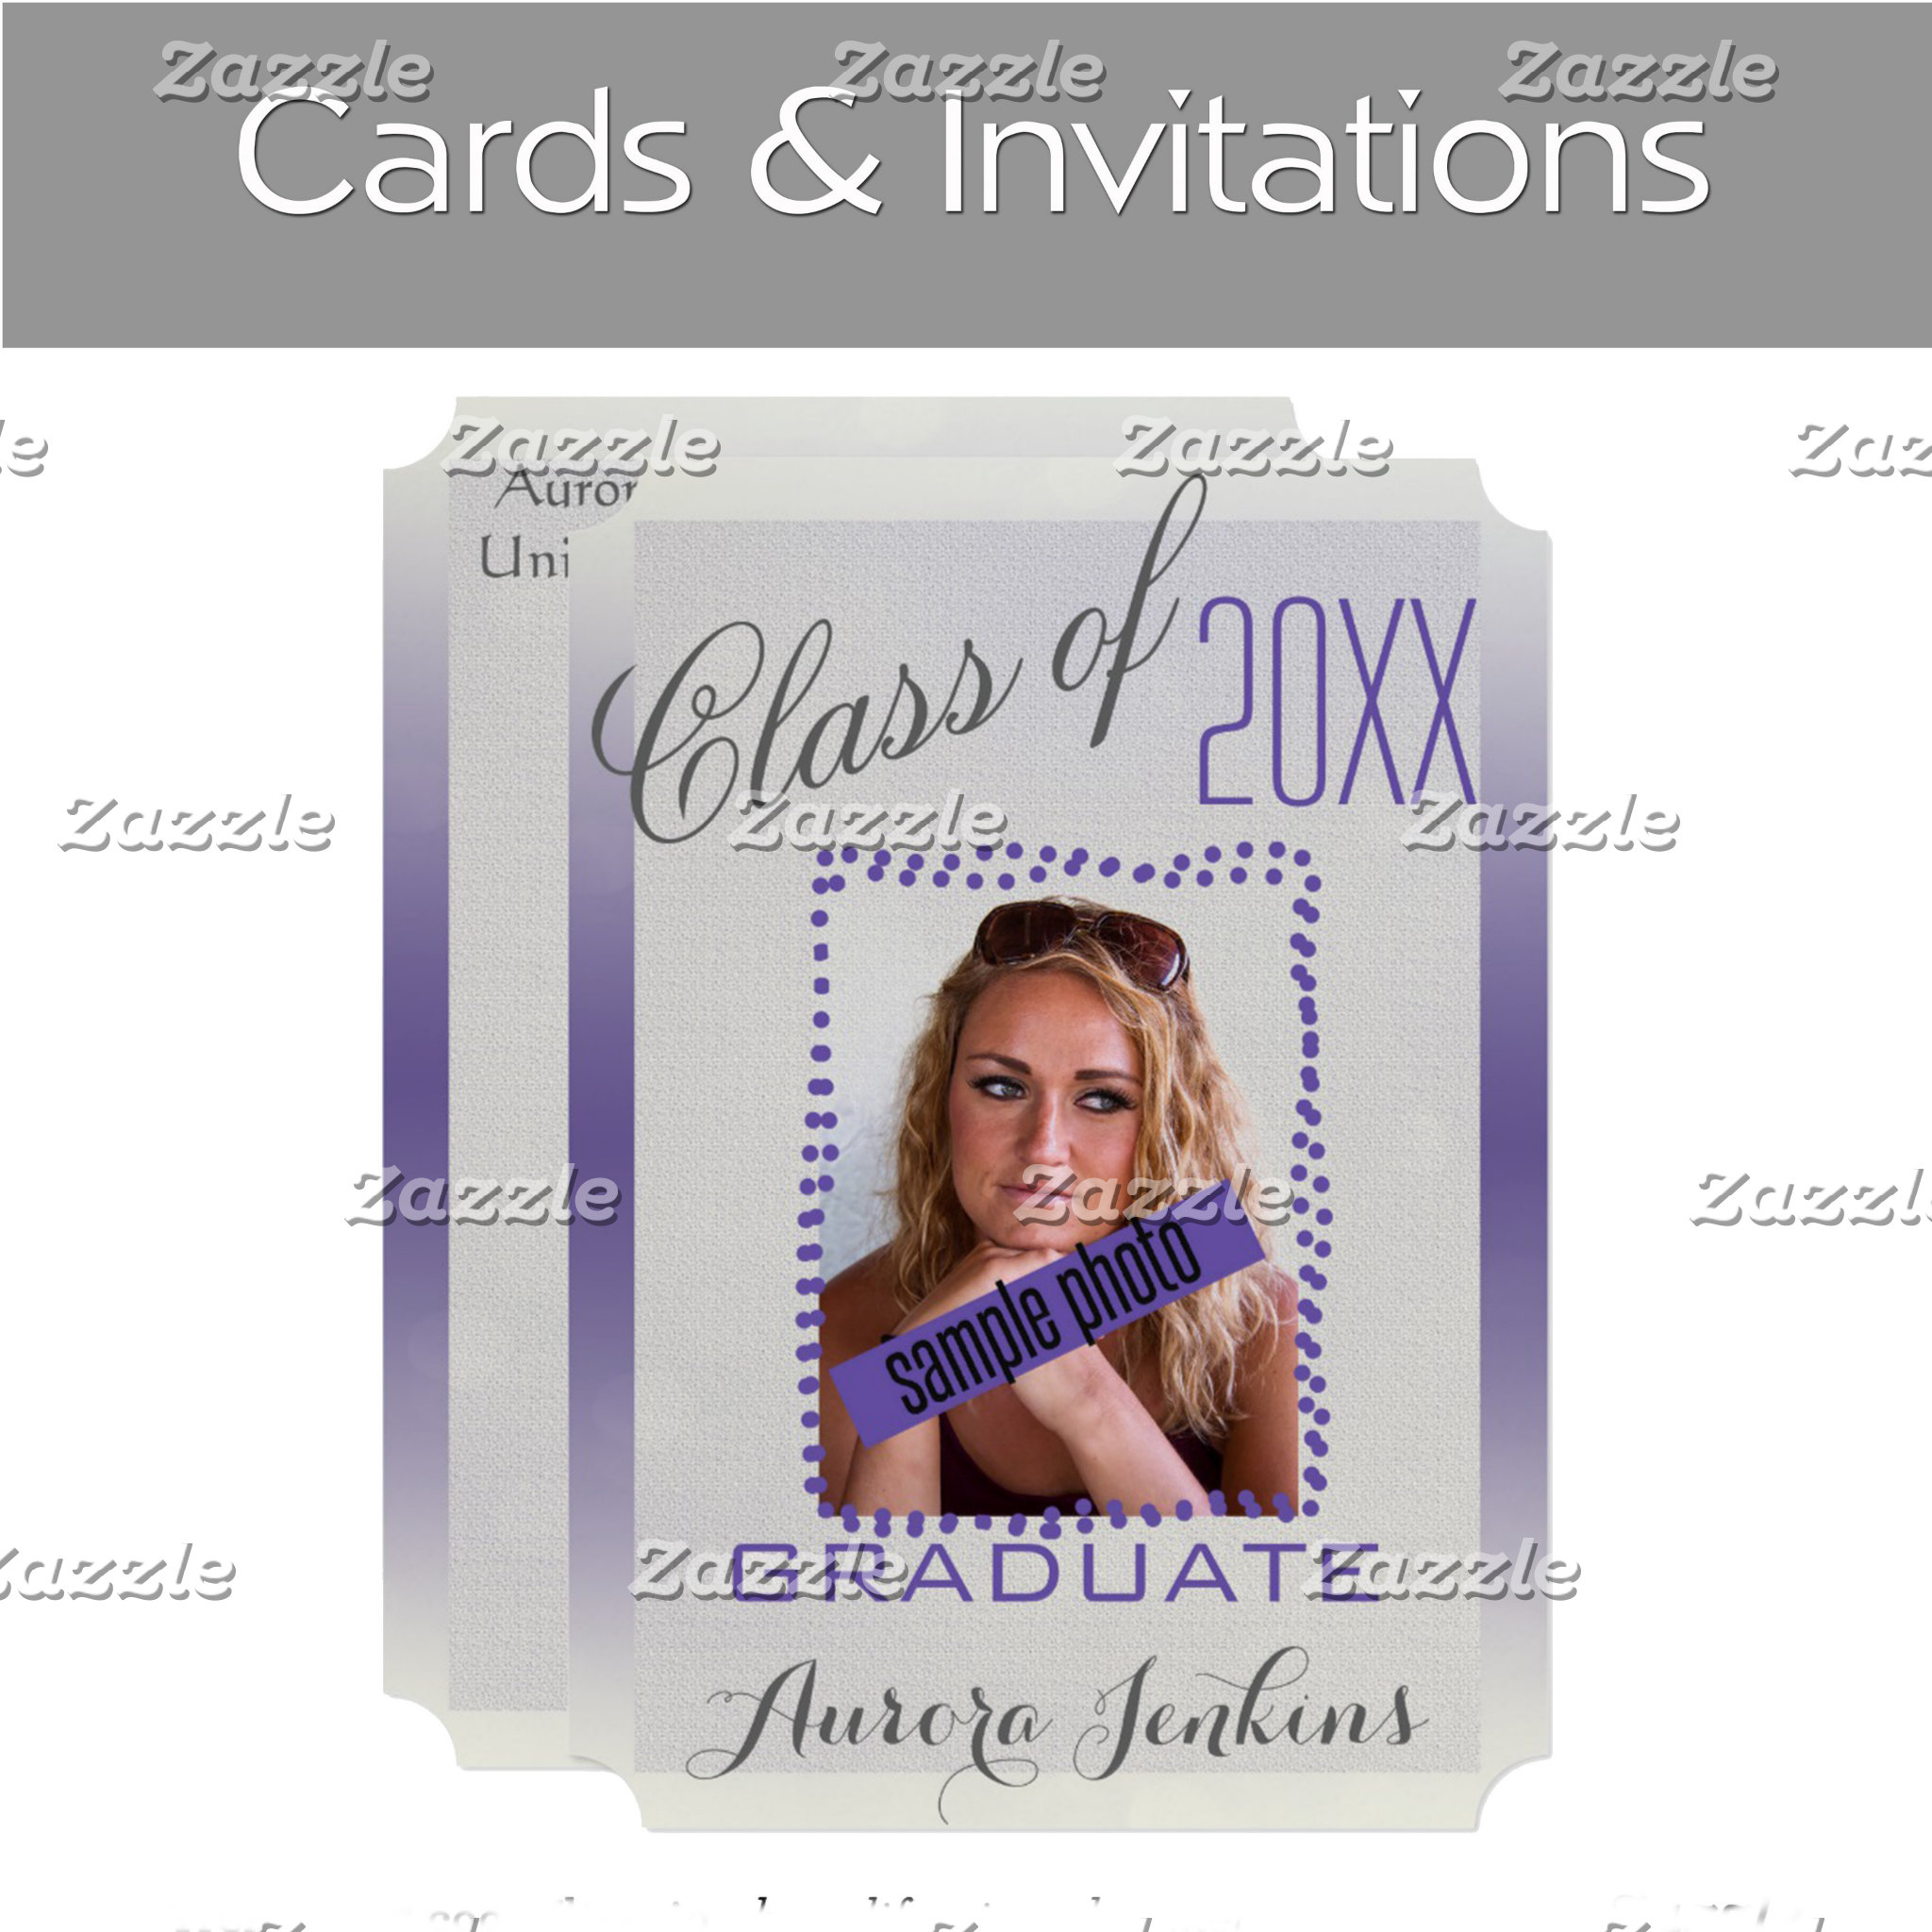 Cards and invitations